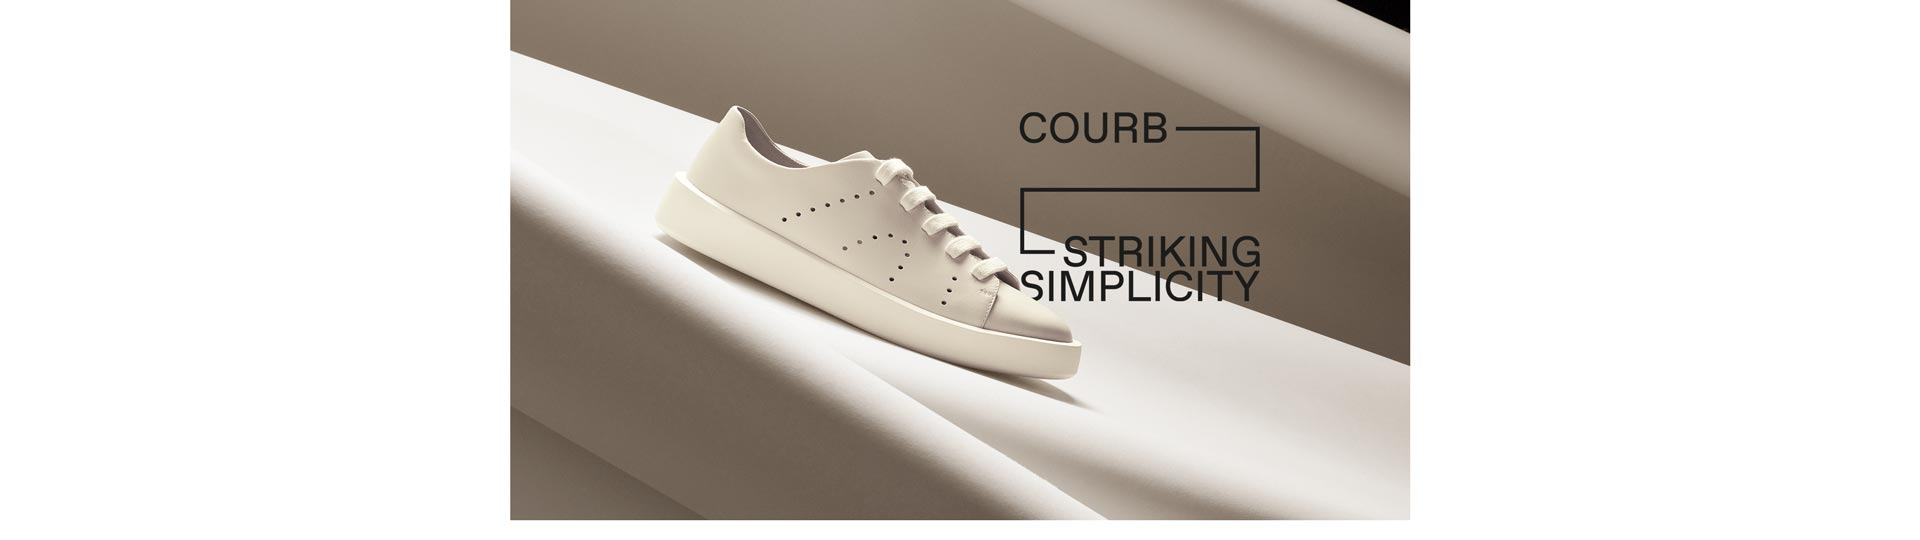 COURB-STRIKING-SIMPLICITY